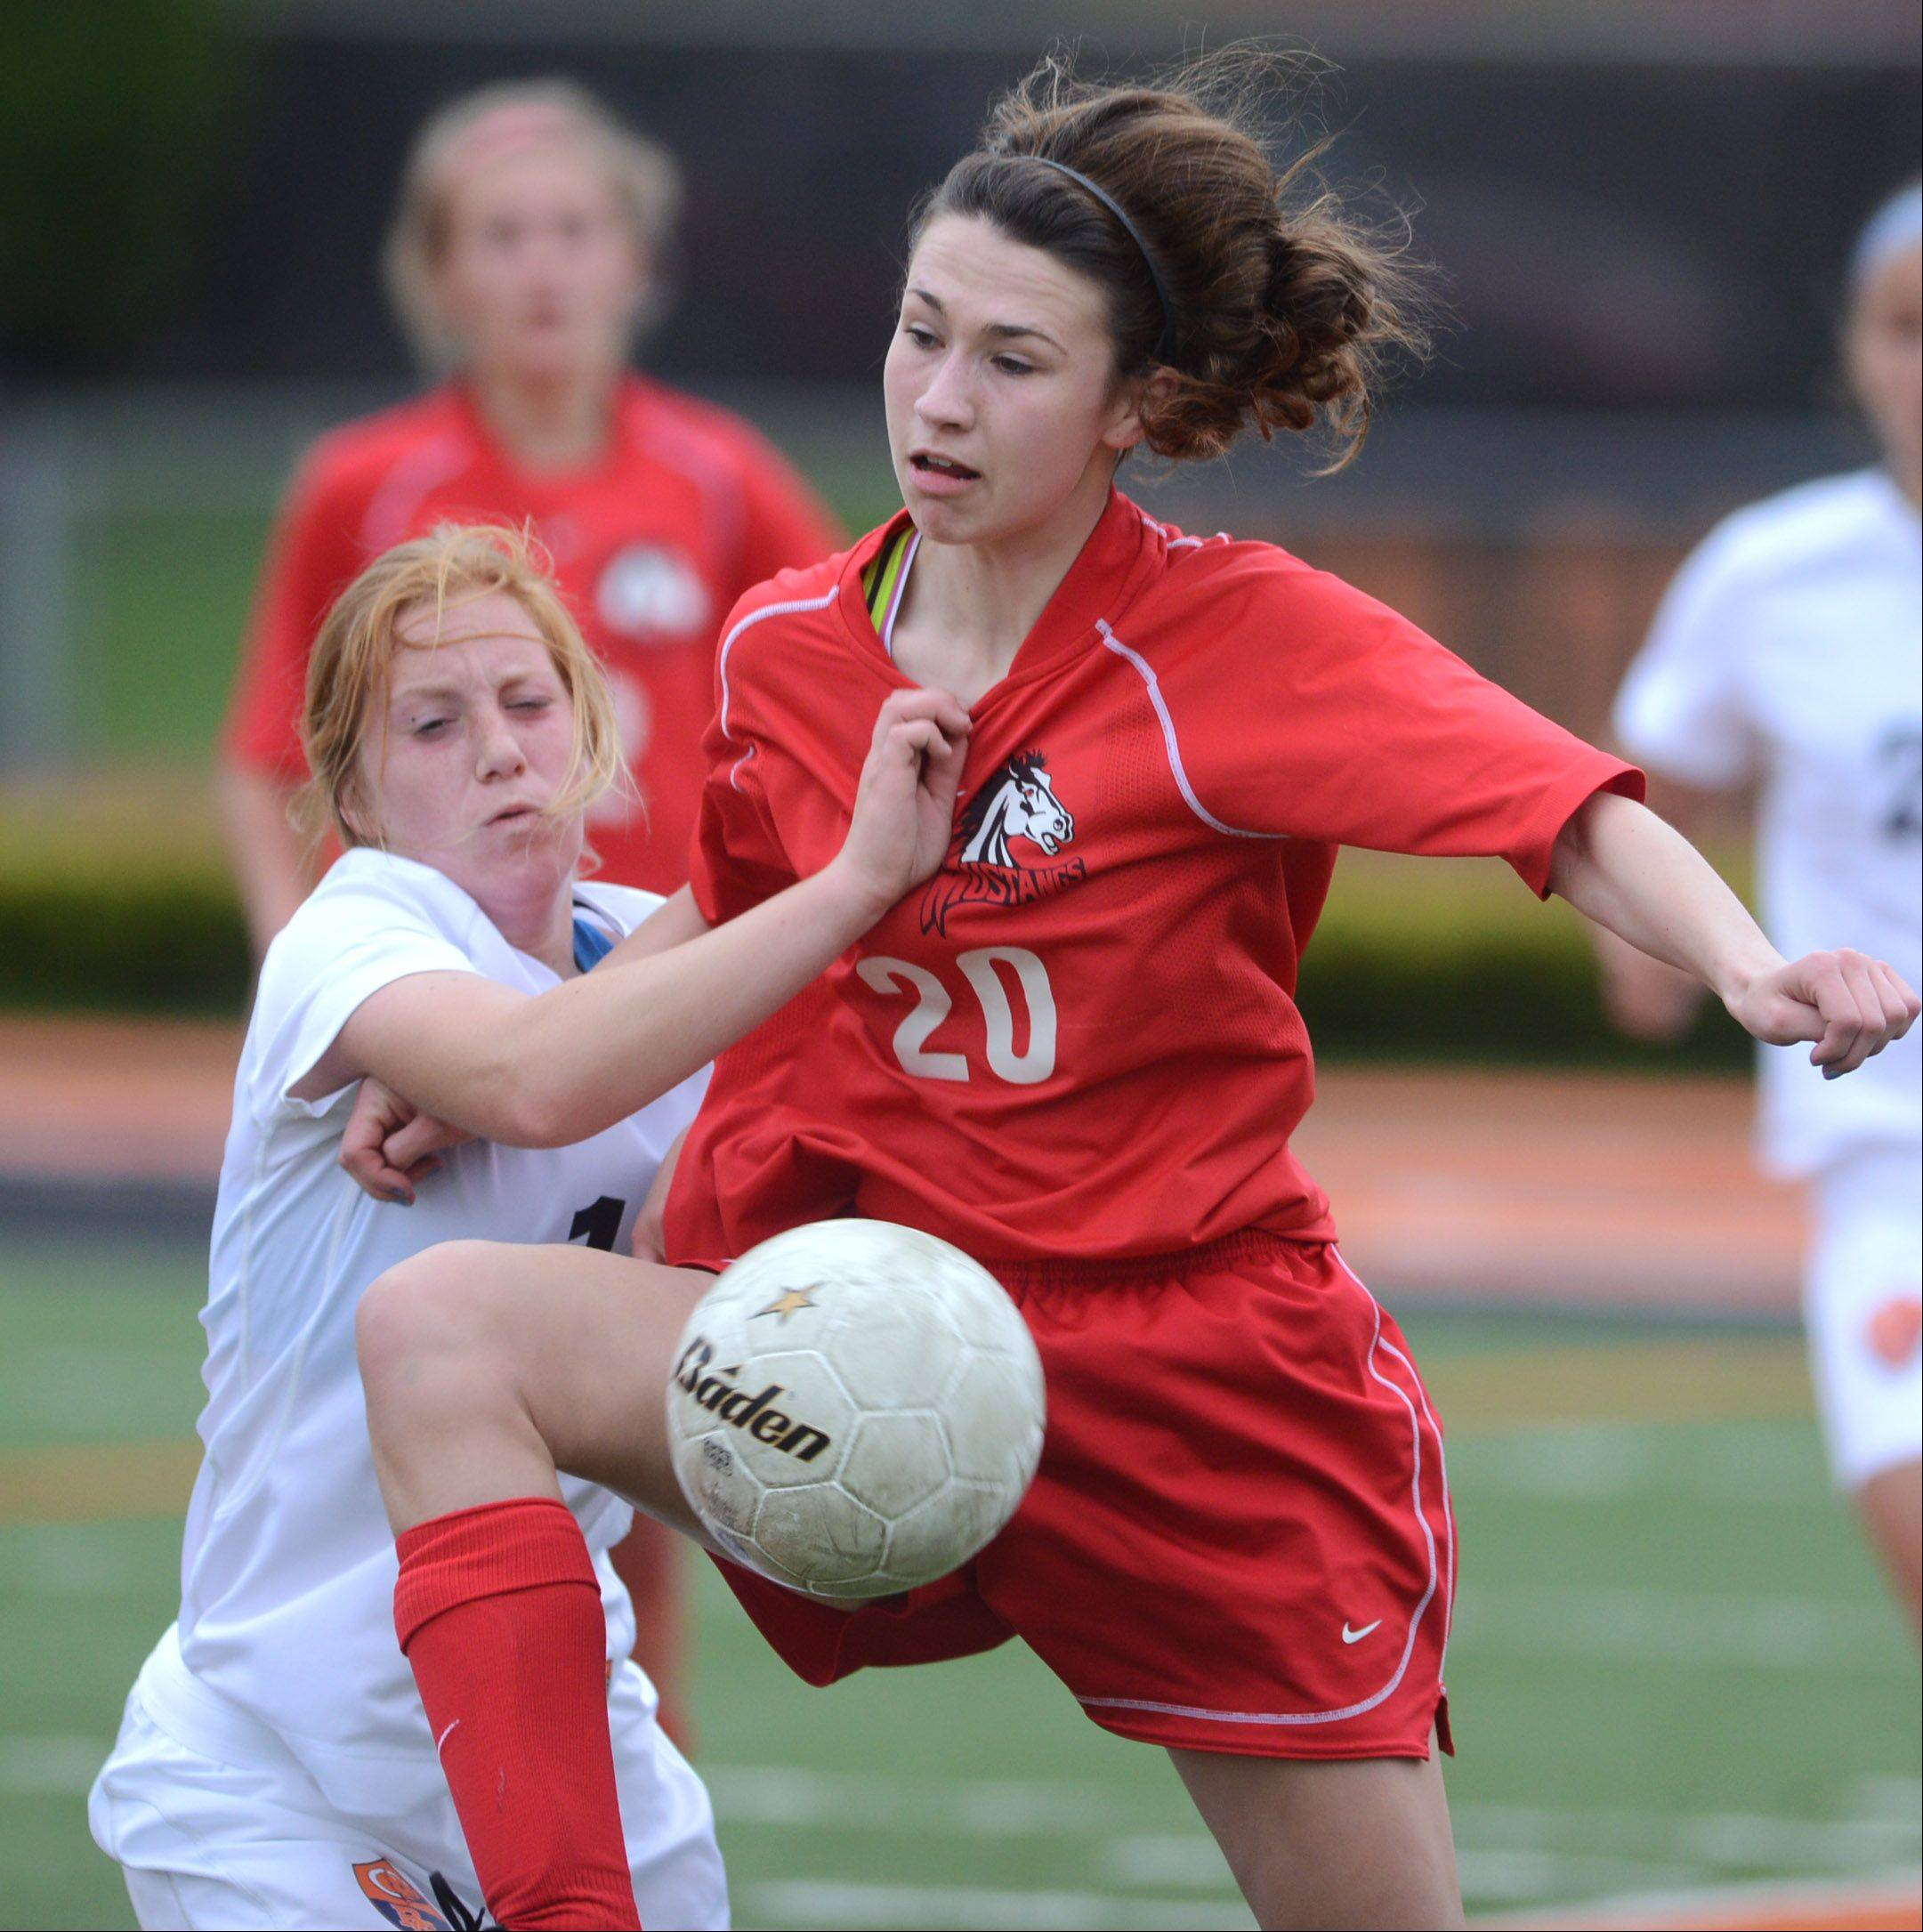 Mundelein's Jessica Schultz (20) controls the ball under pressure from Buffalo Grove's Kelli Zickert during Friday's Class 3A girls soccer regional final at Libertyville.